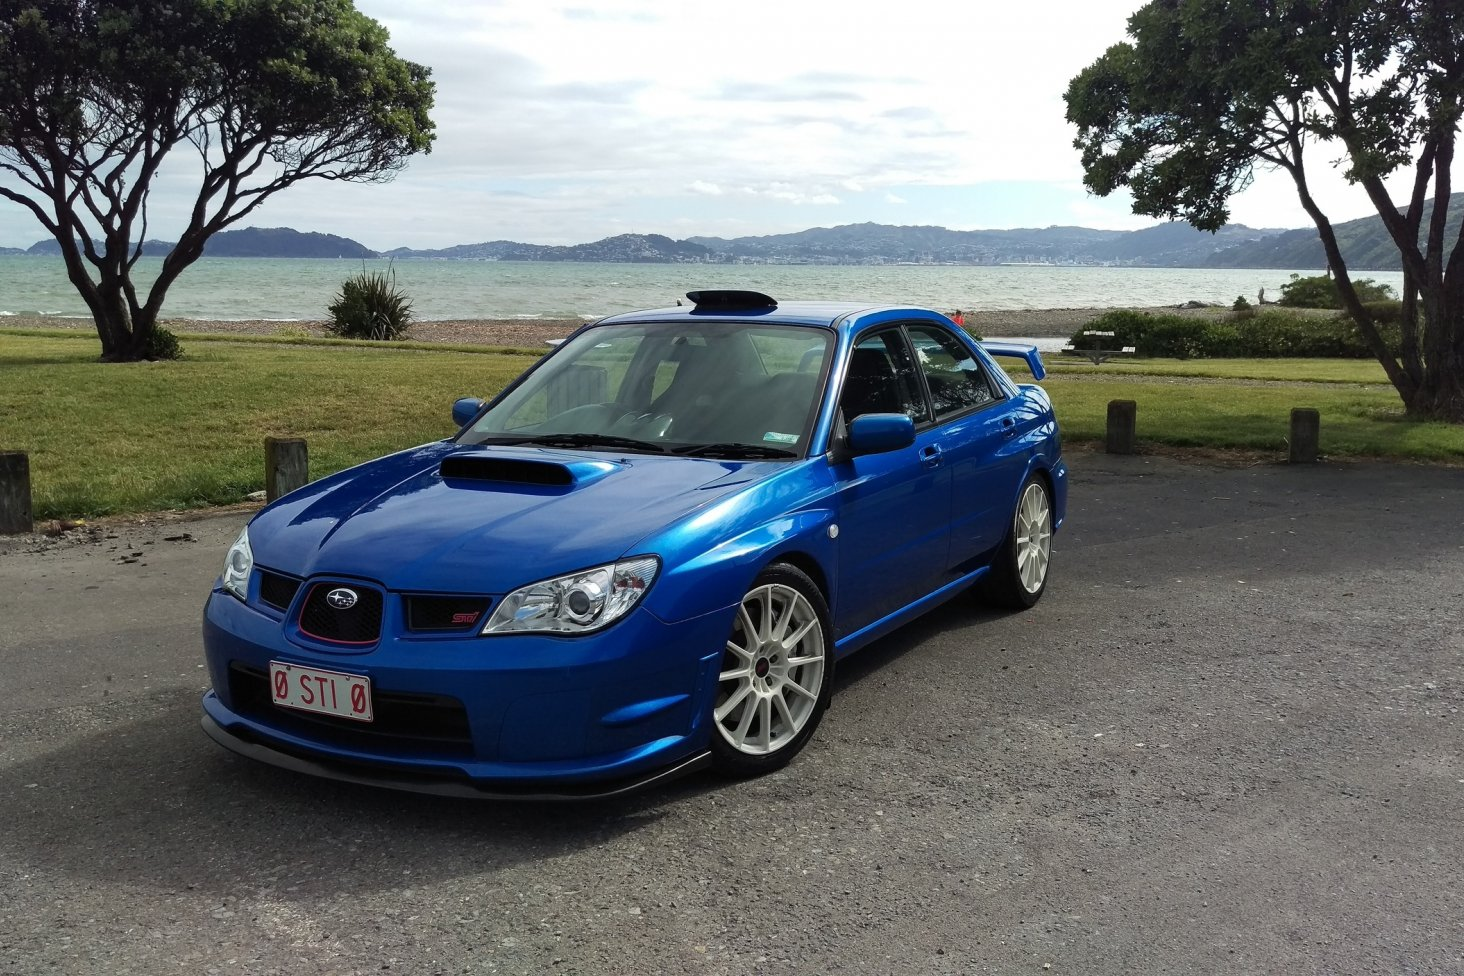 Grahame Hill's 2006 Subaru Impreza WRX STi Spec C Type RA-R is one of the 25 WRX competition winners.